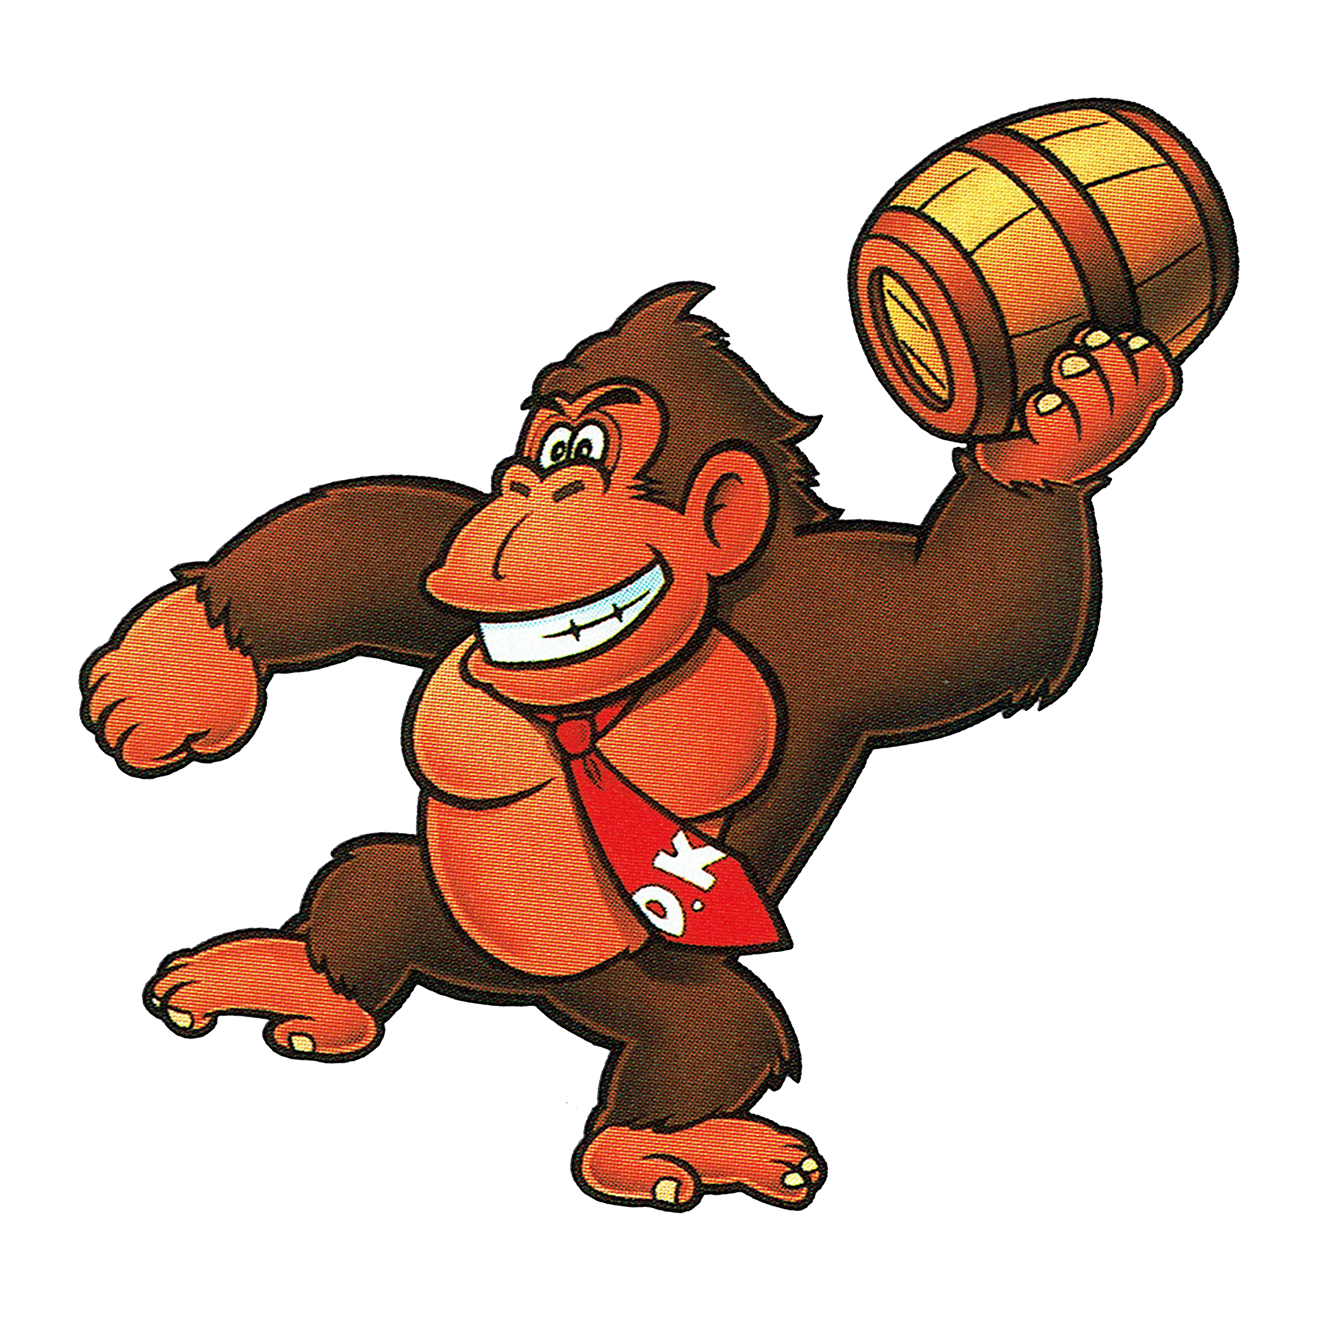 Donkey kong arcade png. Artwork for the video